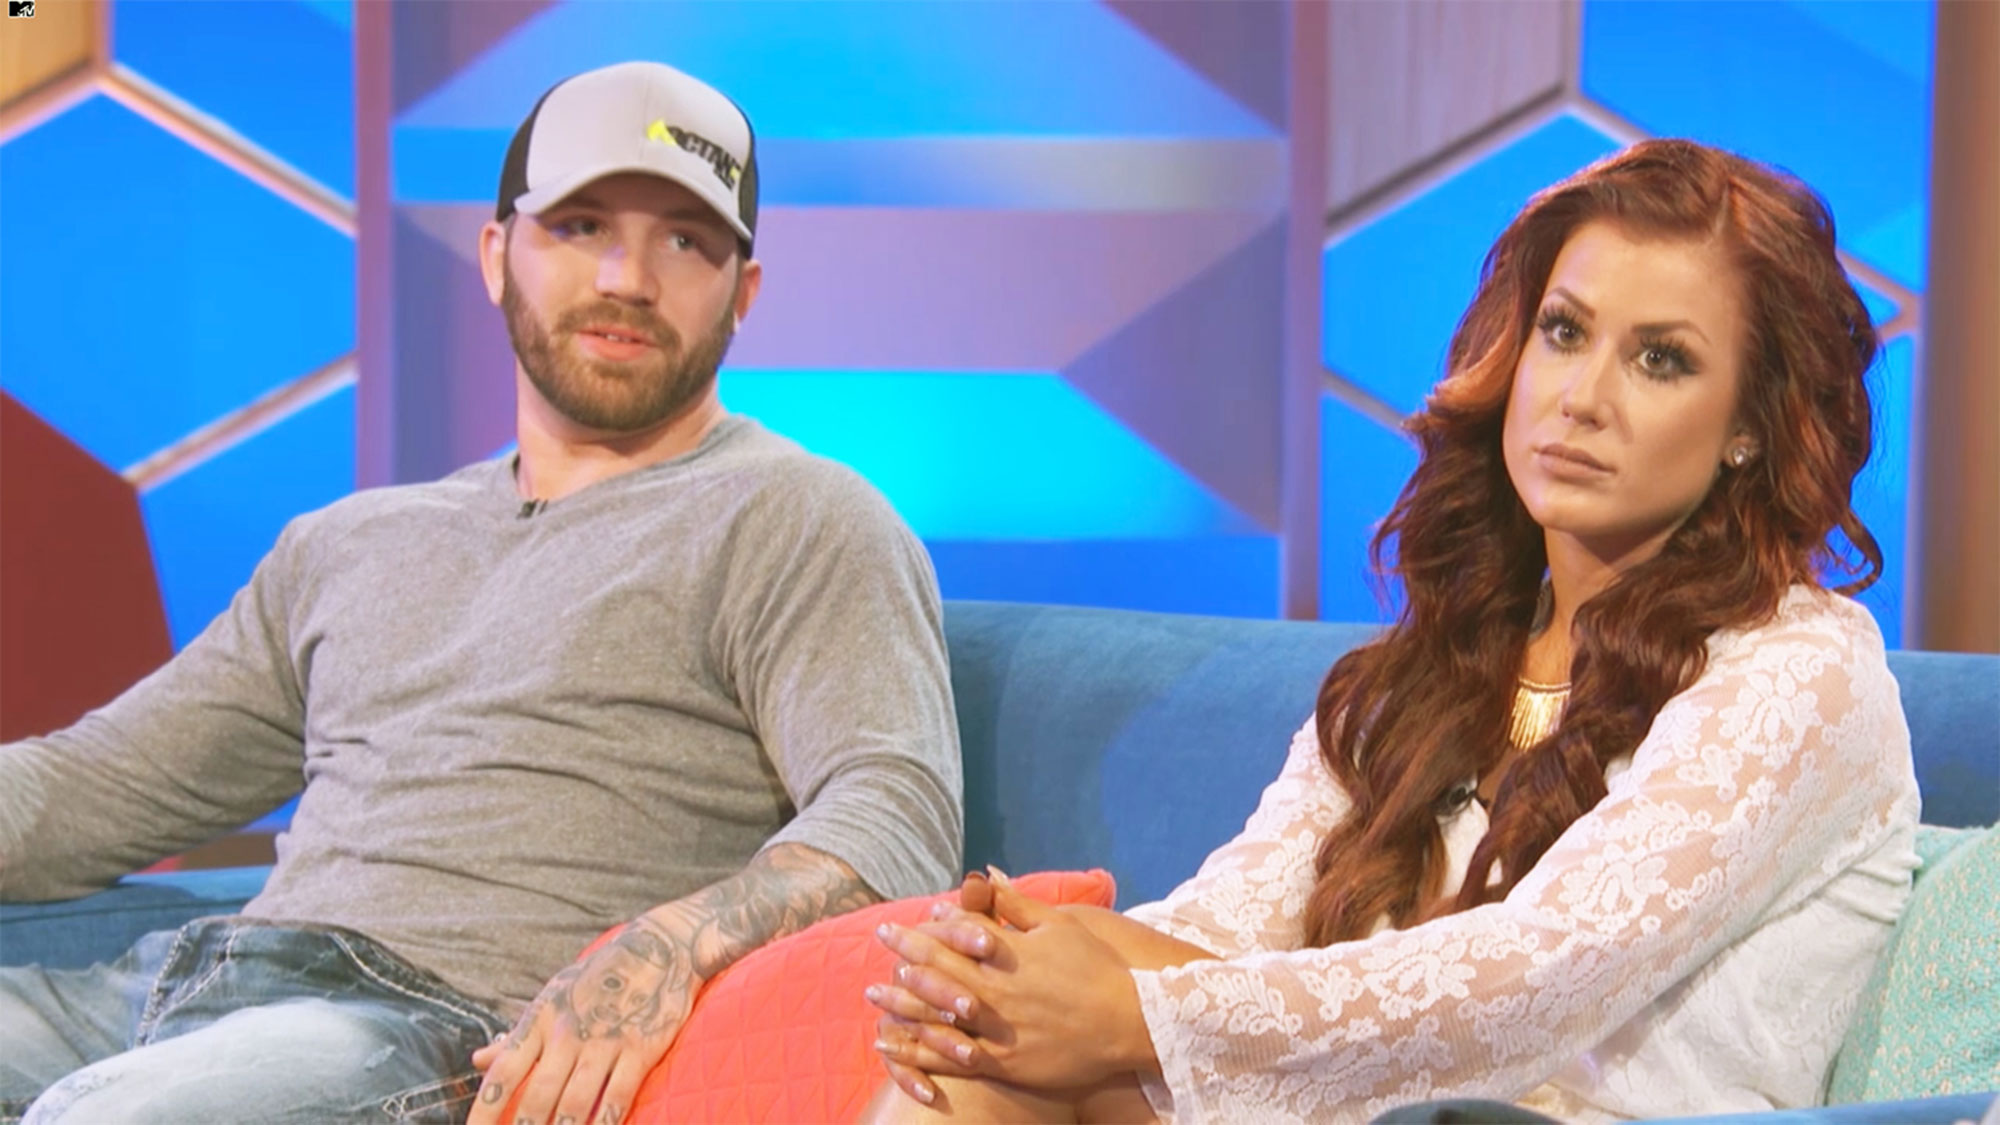 """teen mom stars Coparenting Chelsea Houska and Adam Lind - Chelsea Houska opened up about her coparenting plans with Adam Lind , who she shares daughter Aubree with. """"[I hope] that he would learn something from being in jail and being away from Aubree, grow up, stop getting in trouble and we could get along and he could see Aubree and she could be part of her sibling's life and that everyone would be happy,"""" the MTV personality told In Touch in May 2013."""